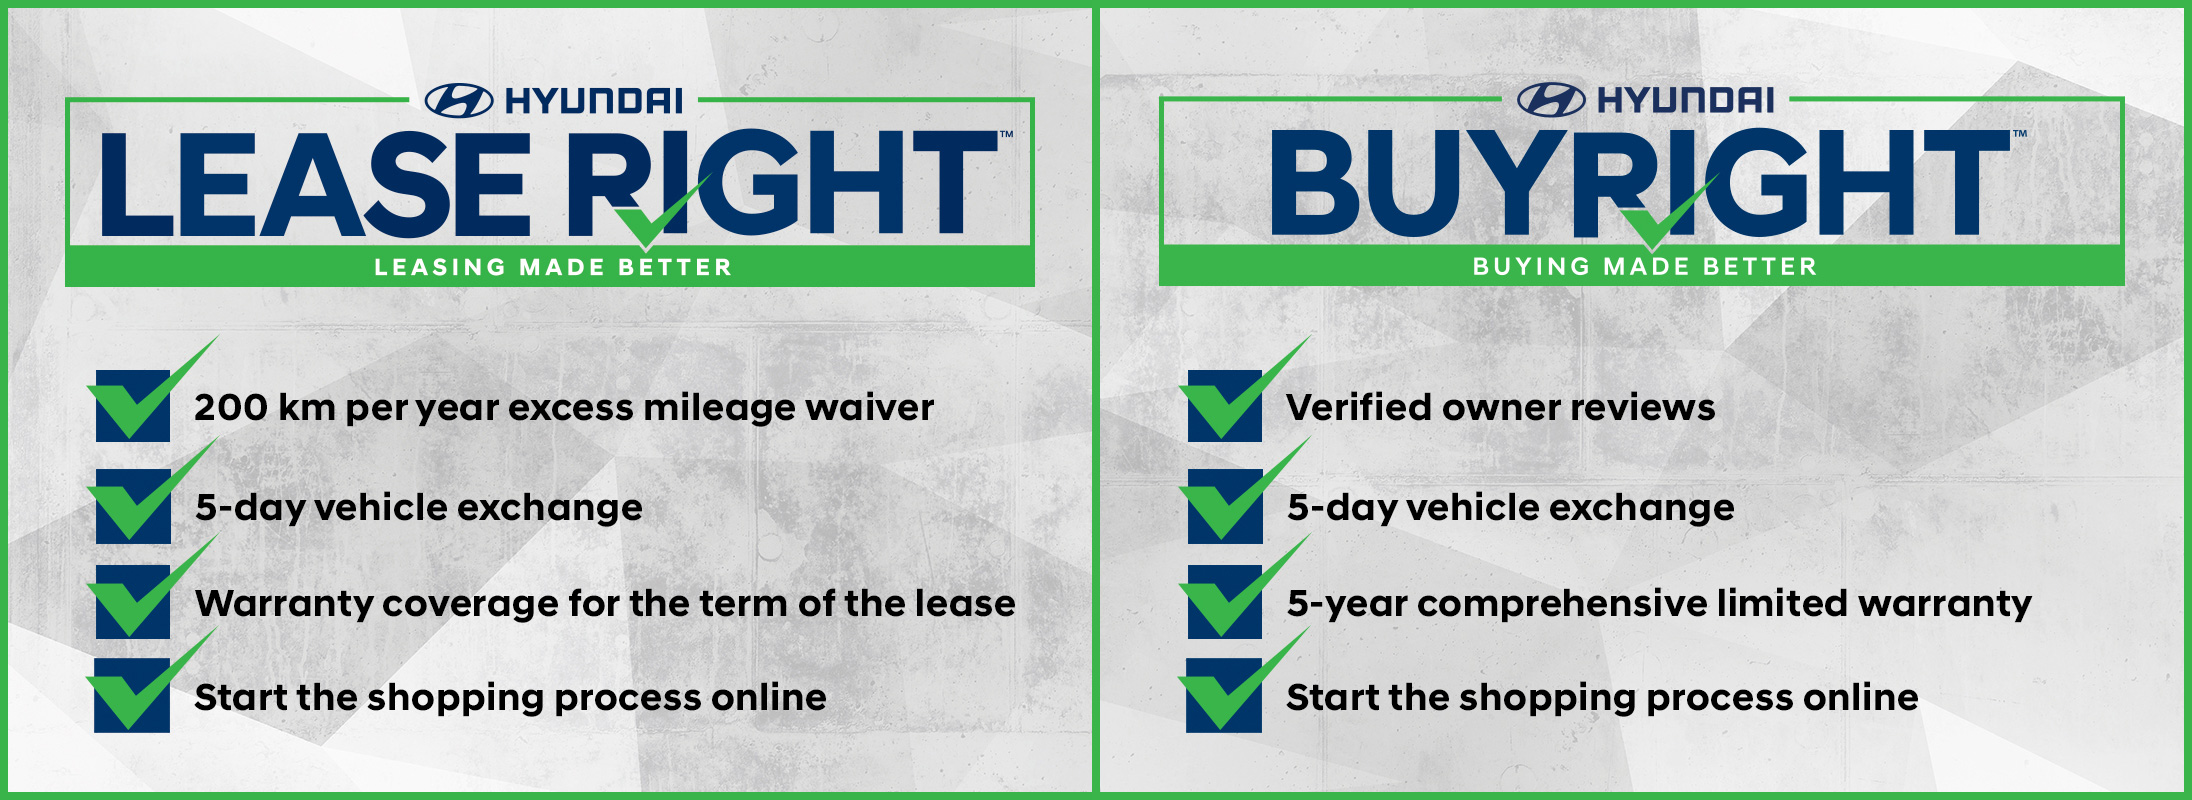 Lease Right: 200 km per year excess mileage waiver, 5-day vehicle exchange, warranty coverage for the term of the lease and start the shopping process online. Buy Right: Verified owner reviews, 5-day vehicle exchange, 5-year comprehensive limited warranty, start the shopping process online.